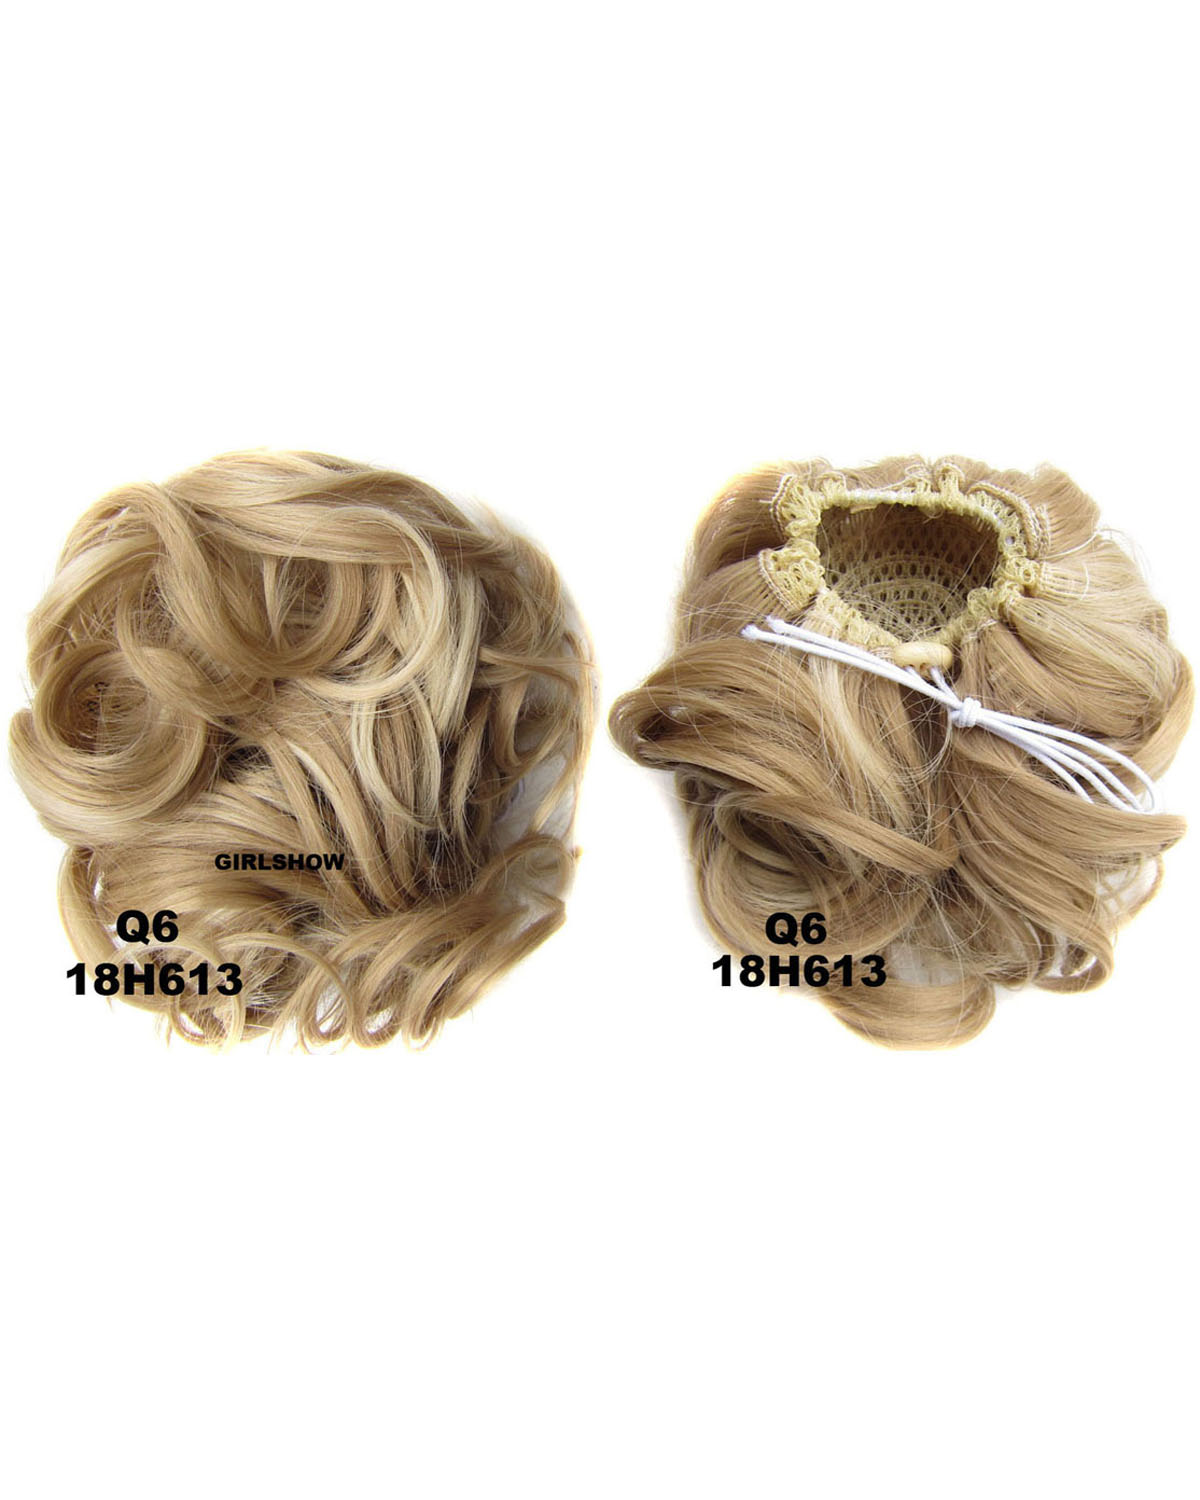 Ladies Exquisite and Clean Curly and Short Hair Buns Drawstring Synthetic Hair Extension Bride Scrunchies 18H613